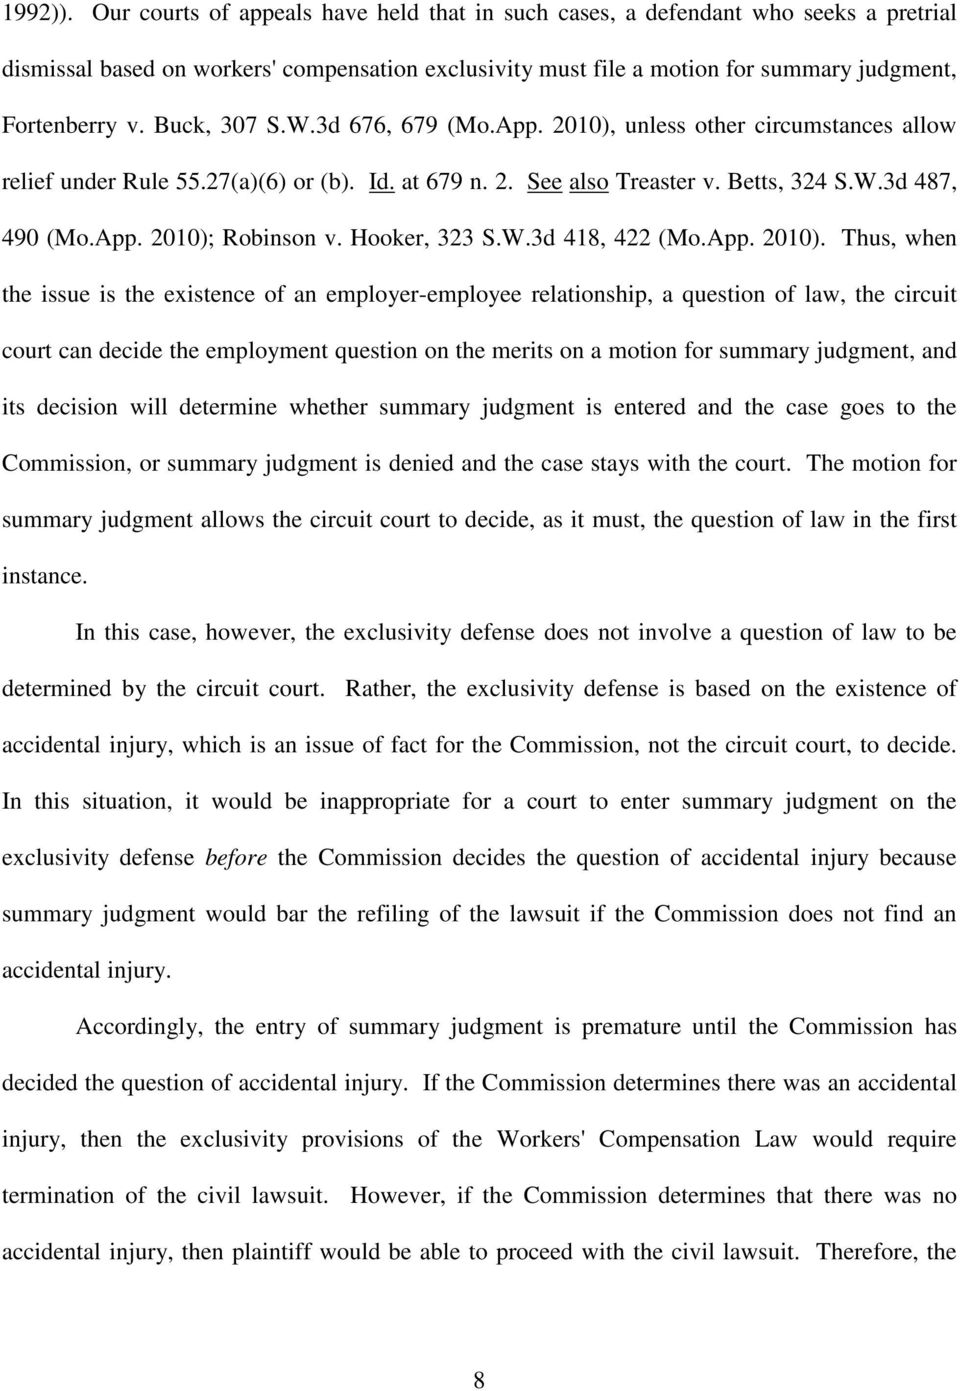 Buck, 307 S.W.3d 676, 679 (Mo.App. 2010), unless other circumstances allow relief under Rule 55.27(a)(6) or (b). Id. at 679 n. 2. See also Treaster v. Betts, 324 S.W.3d 487, 490 (Mo.App. 2010); Robinson v.